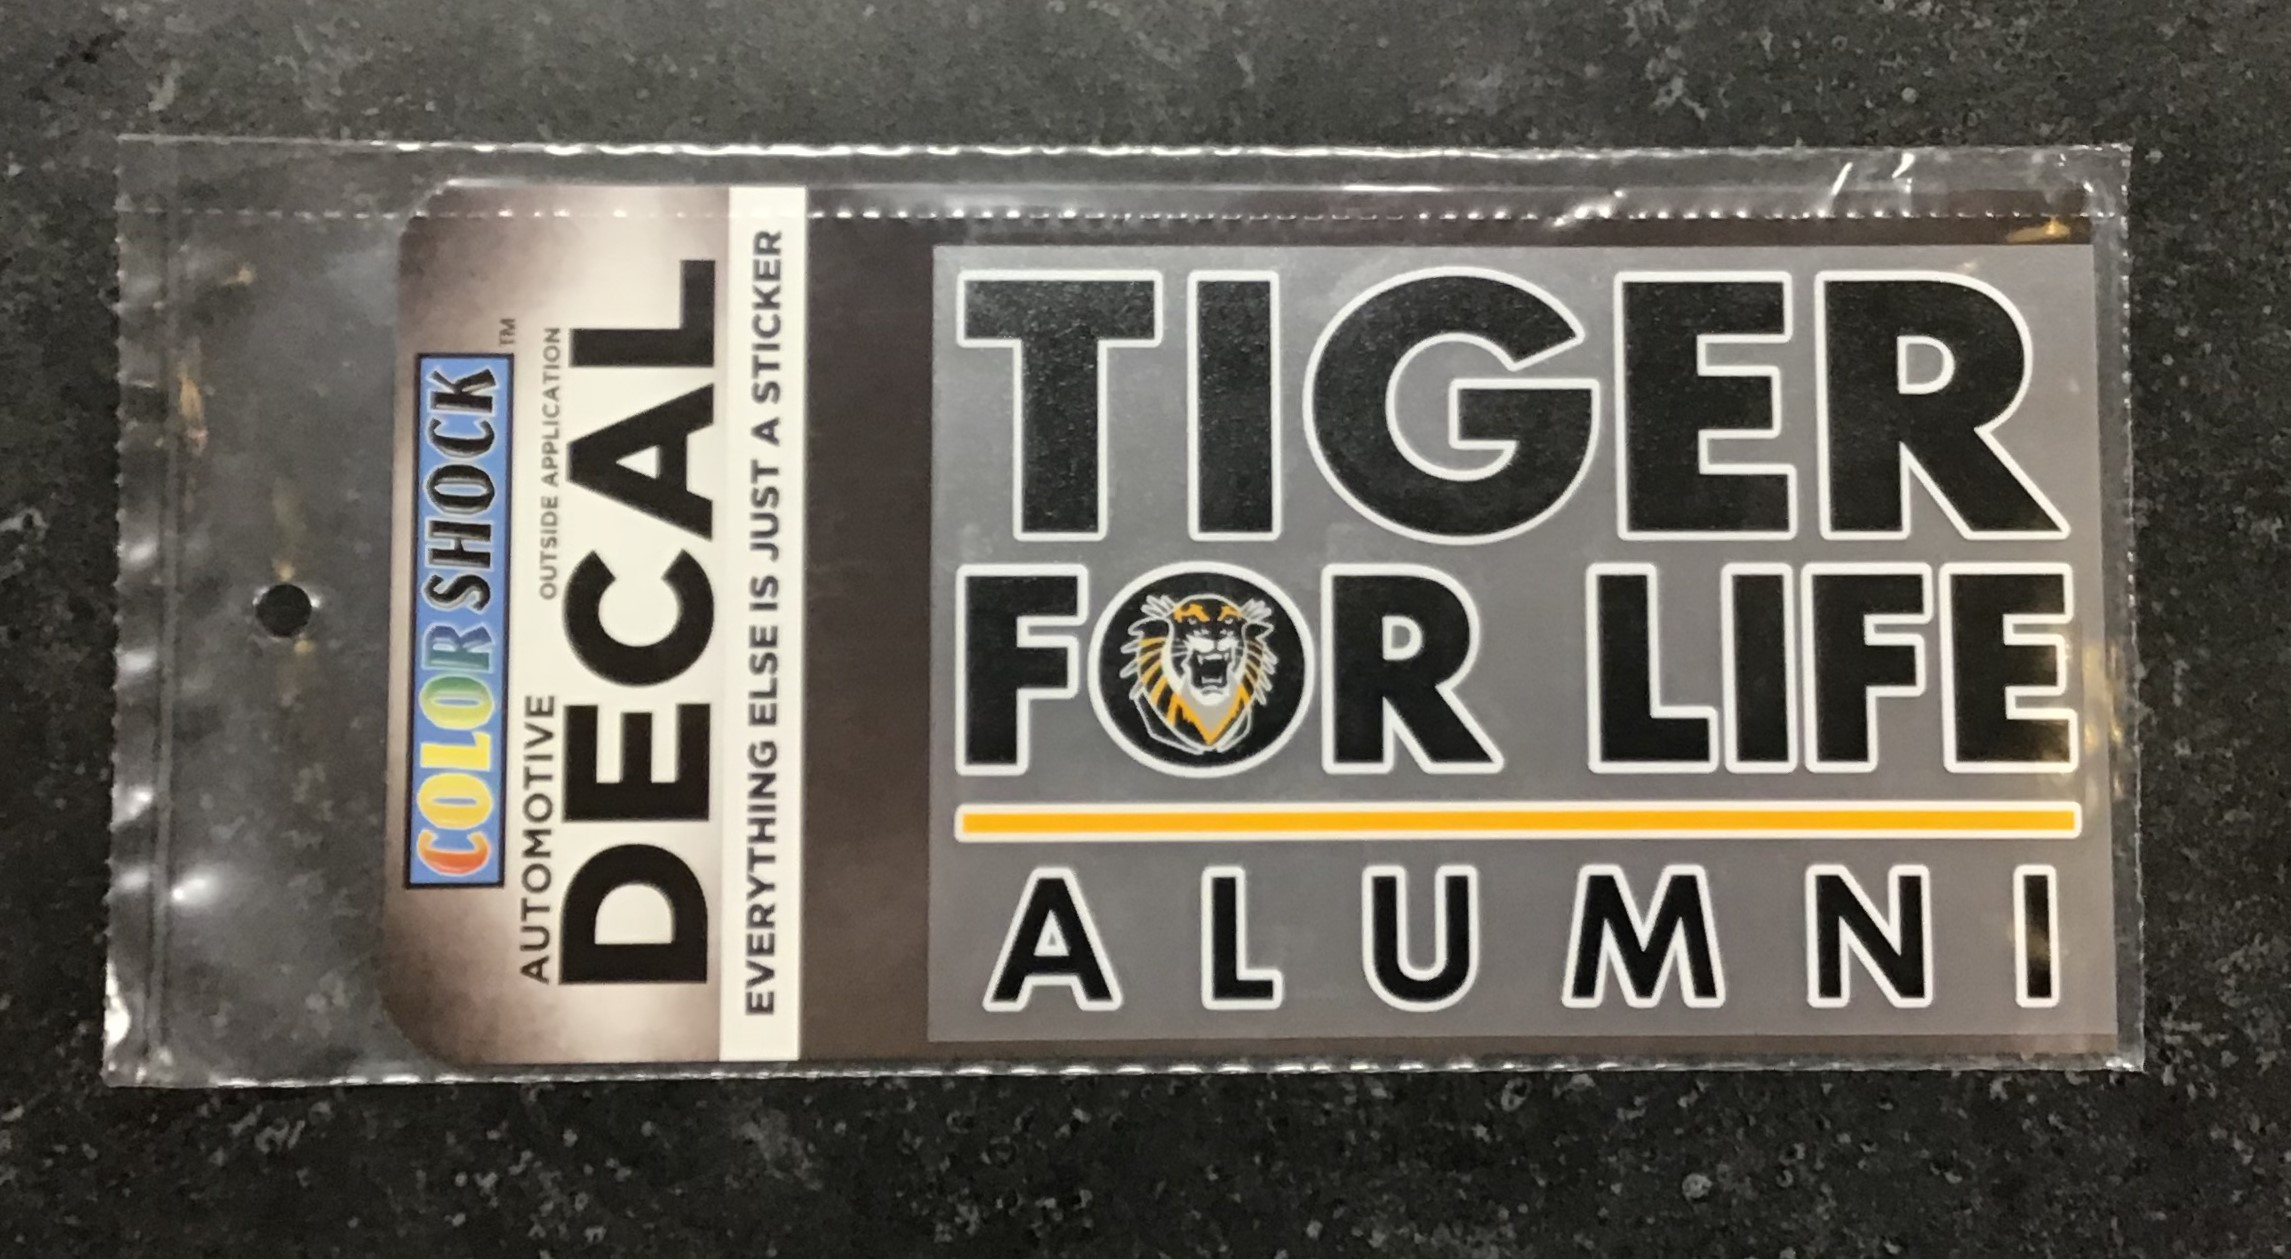 Image for the Tiger for Life Decal product